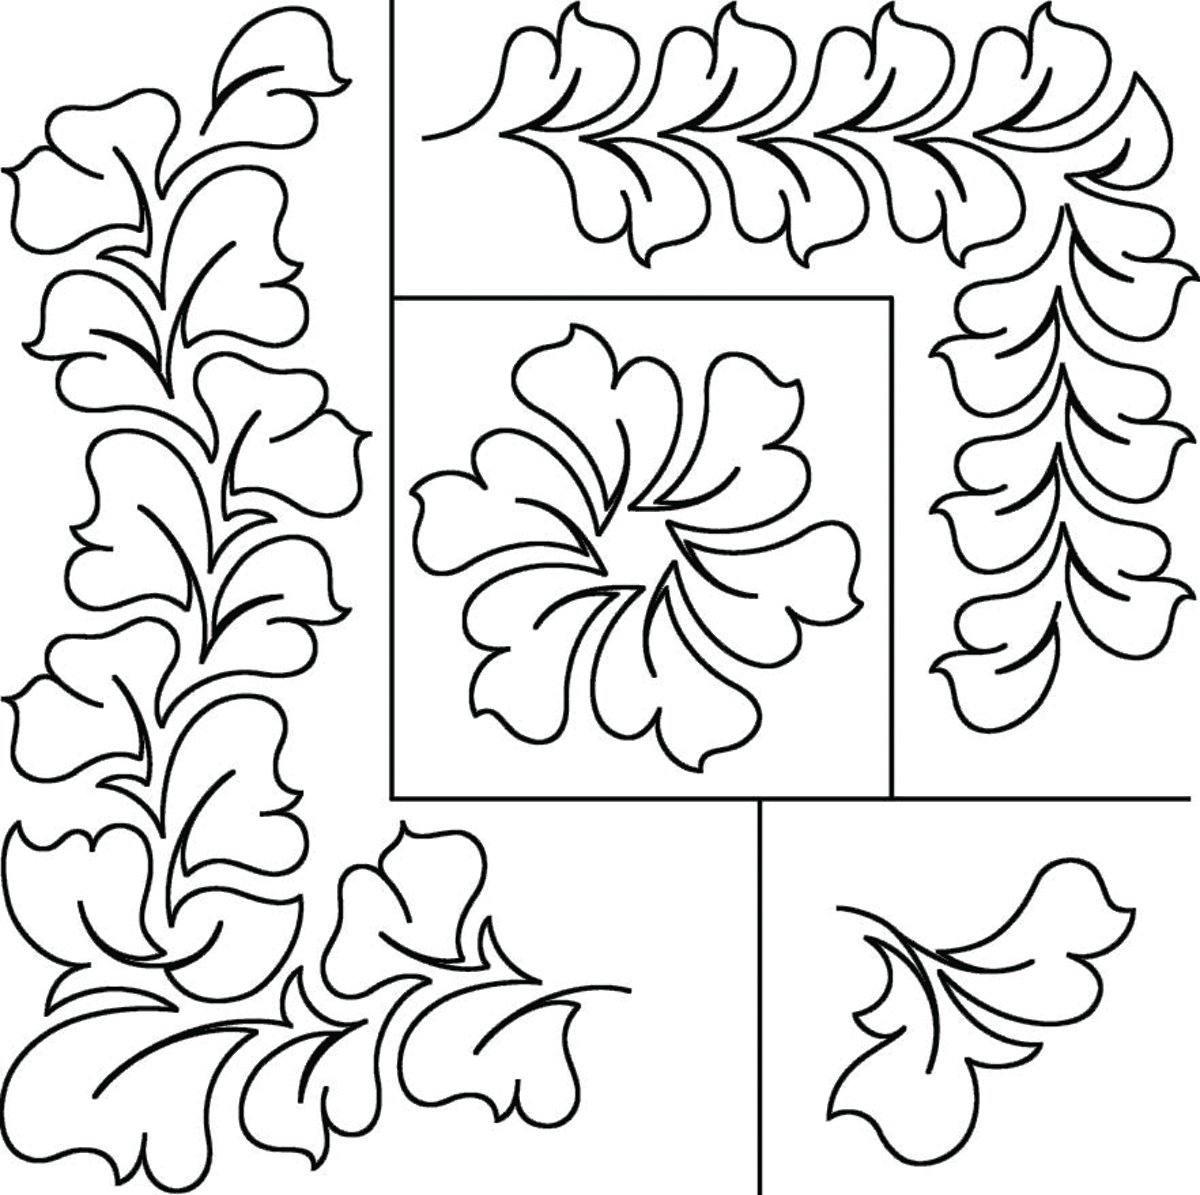 Sten Source 17-Inch by 20-Inch Quilt Stencils by Patricia Ritter, Hyacinth by Sten Source